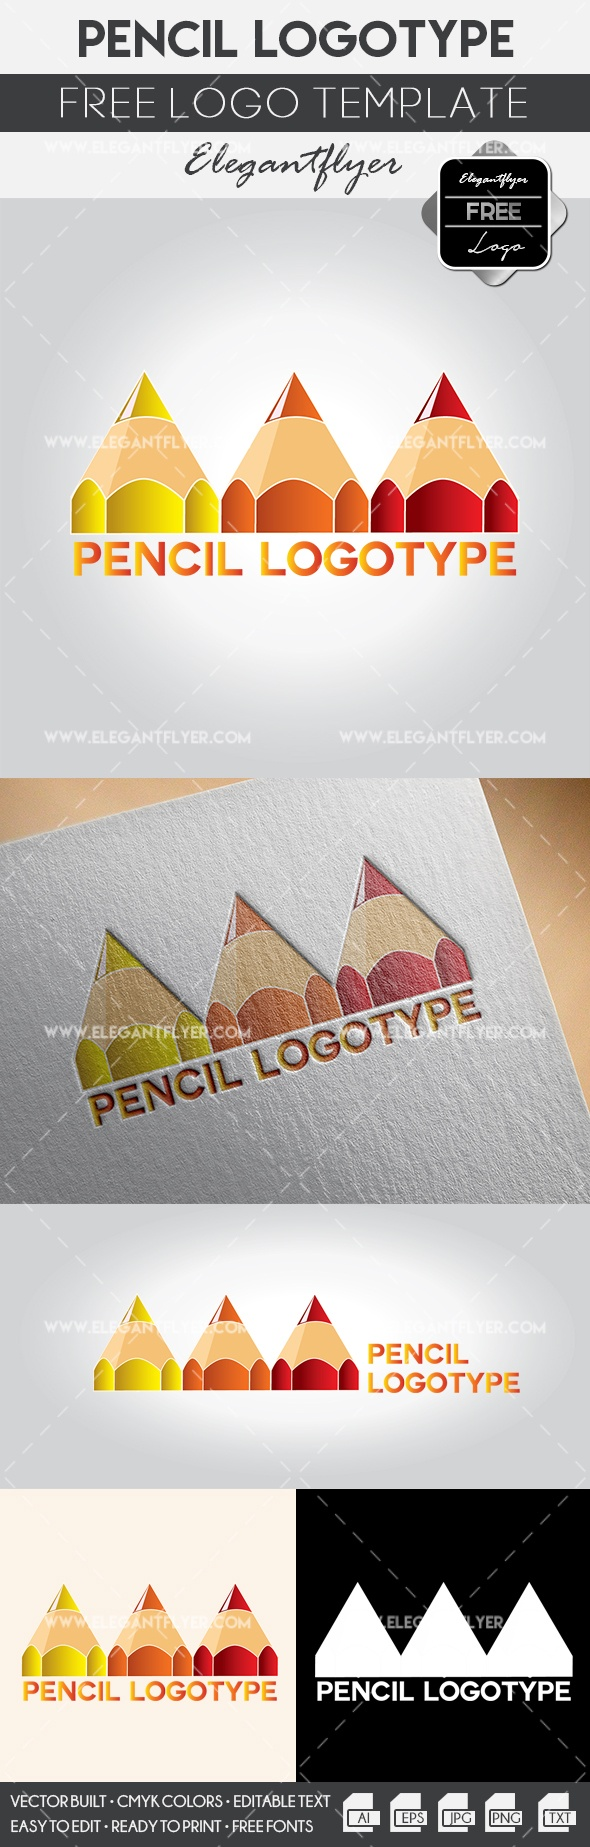 Pencil – Free Logo Templates